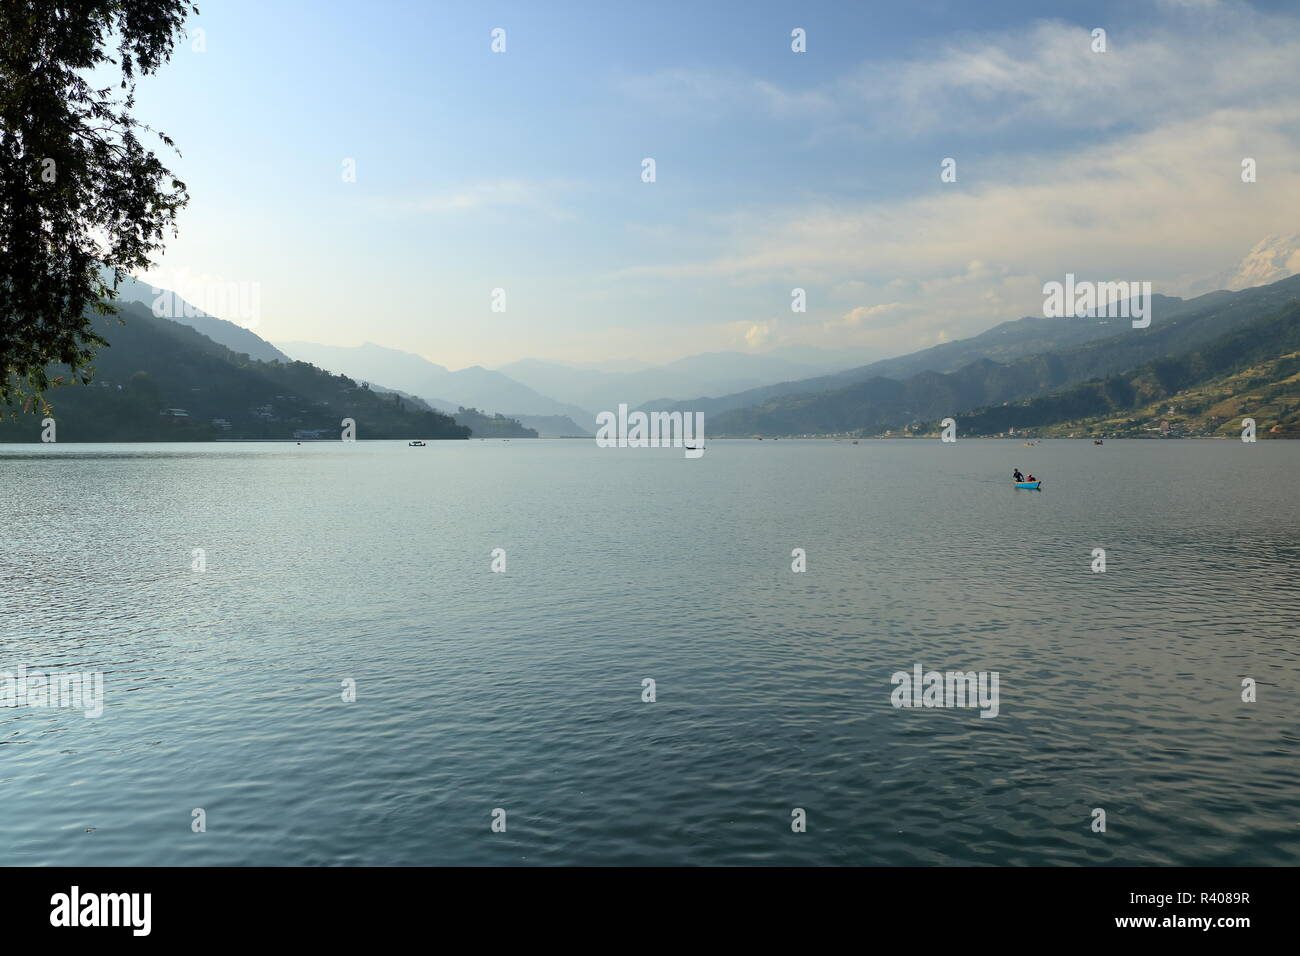 Beautiful landscape of Phewa Lake in Pokhara in Nepal - Stock Image